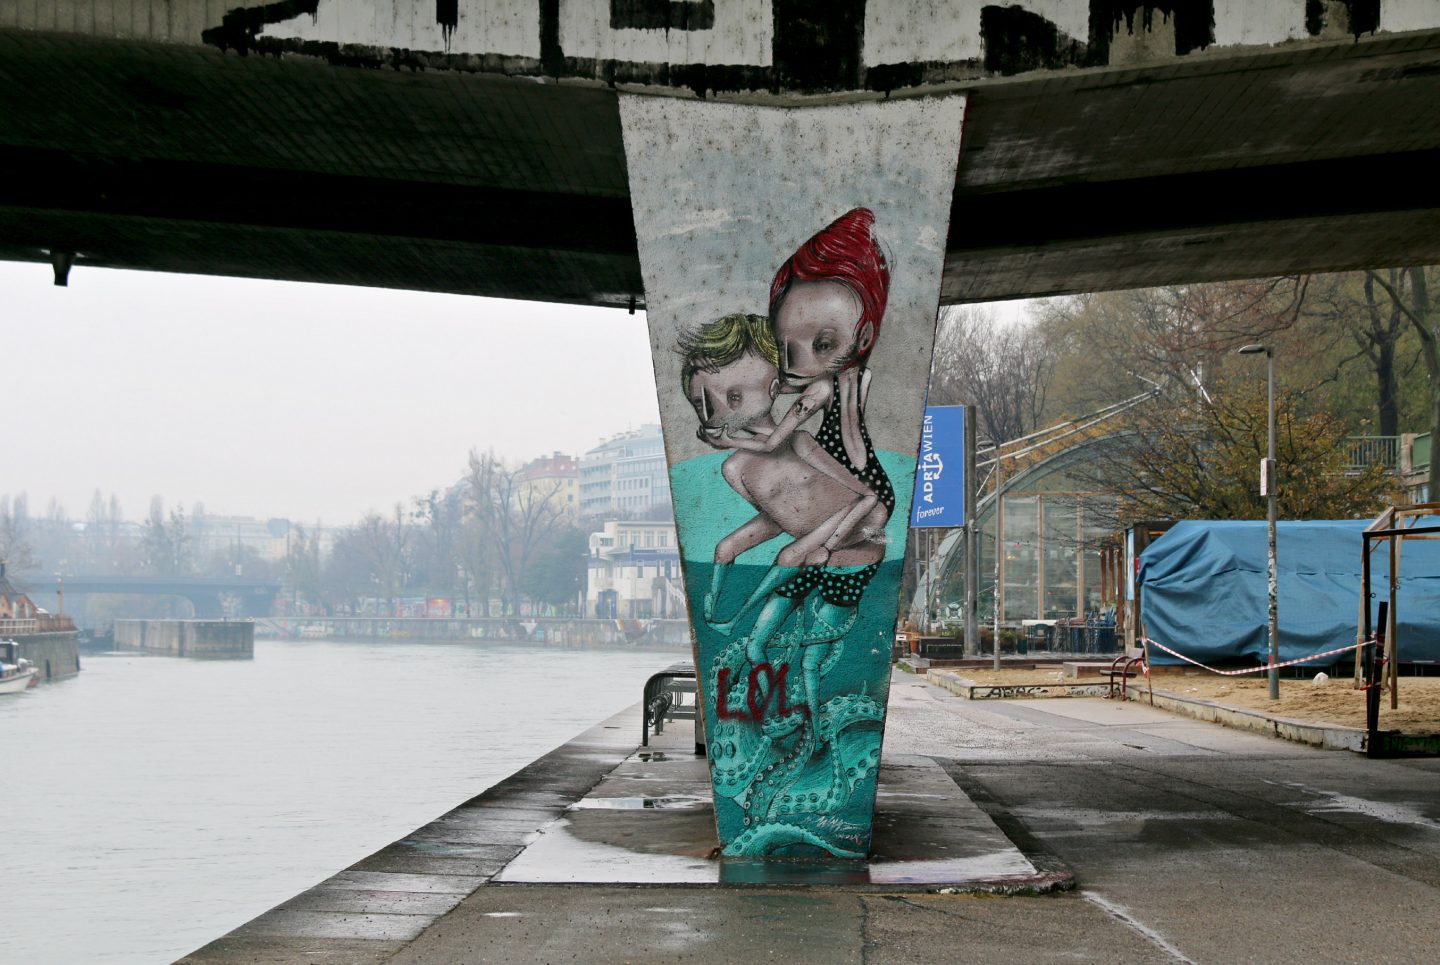 Vienna street art by the canal 19